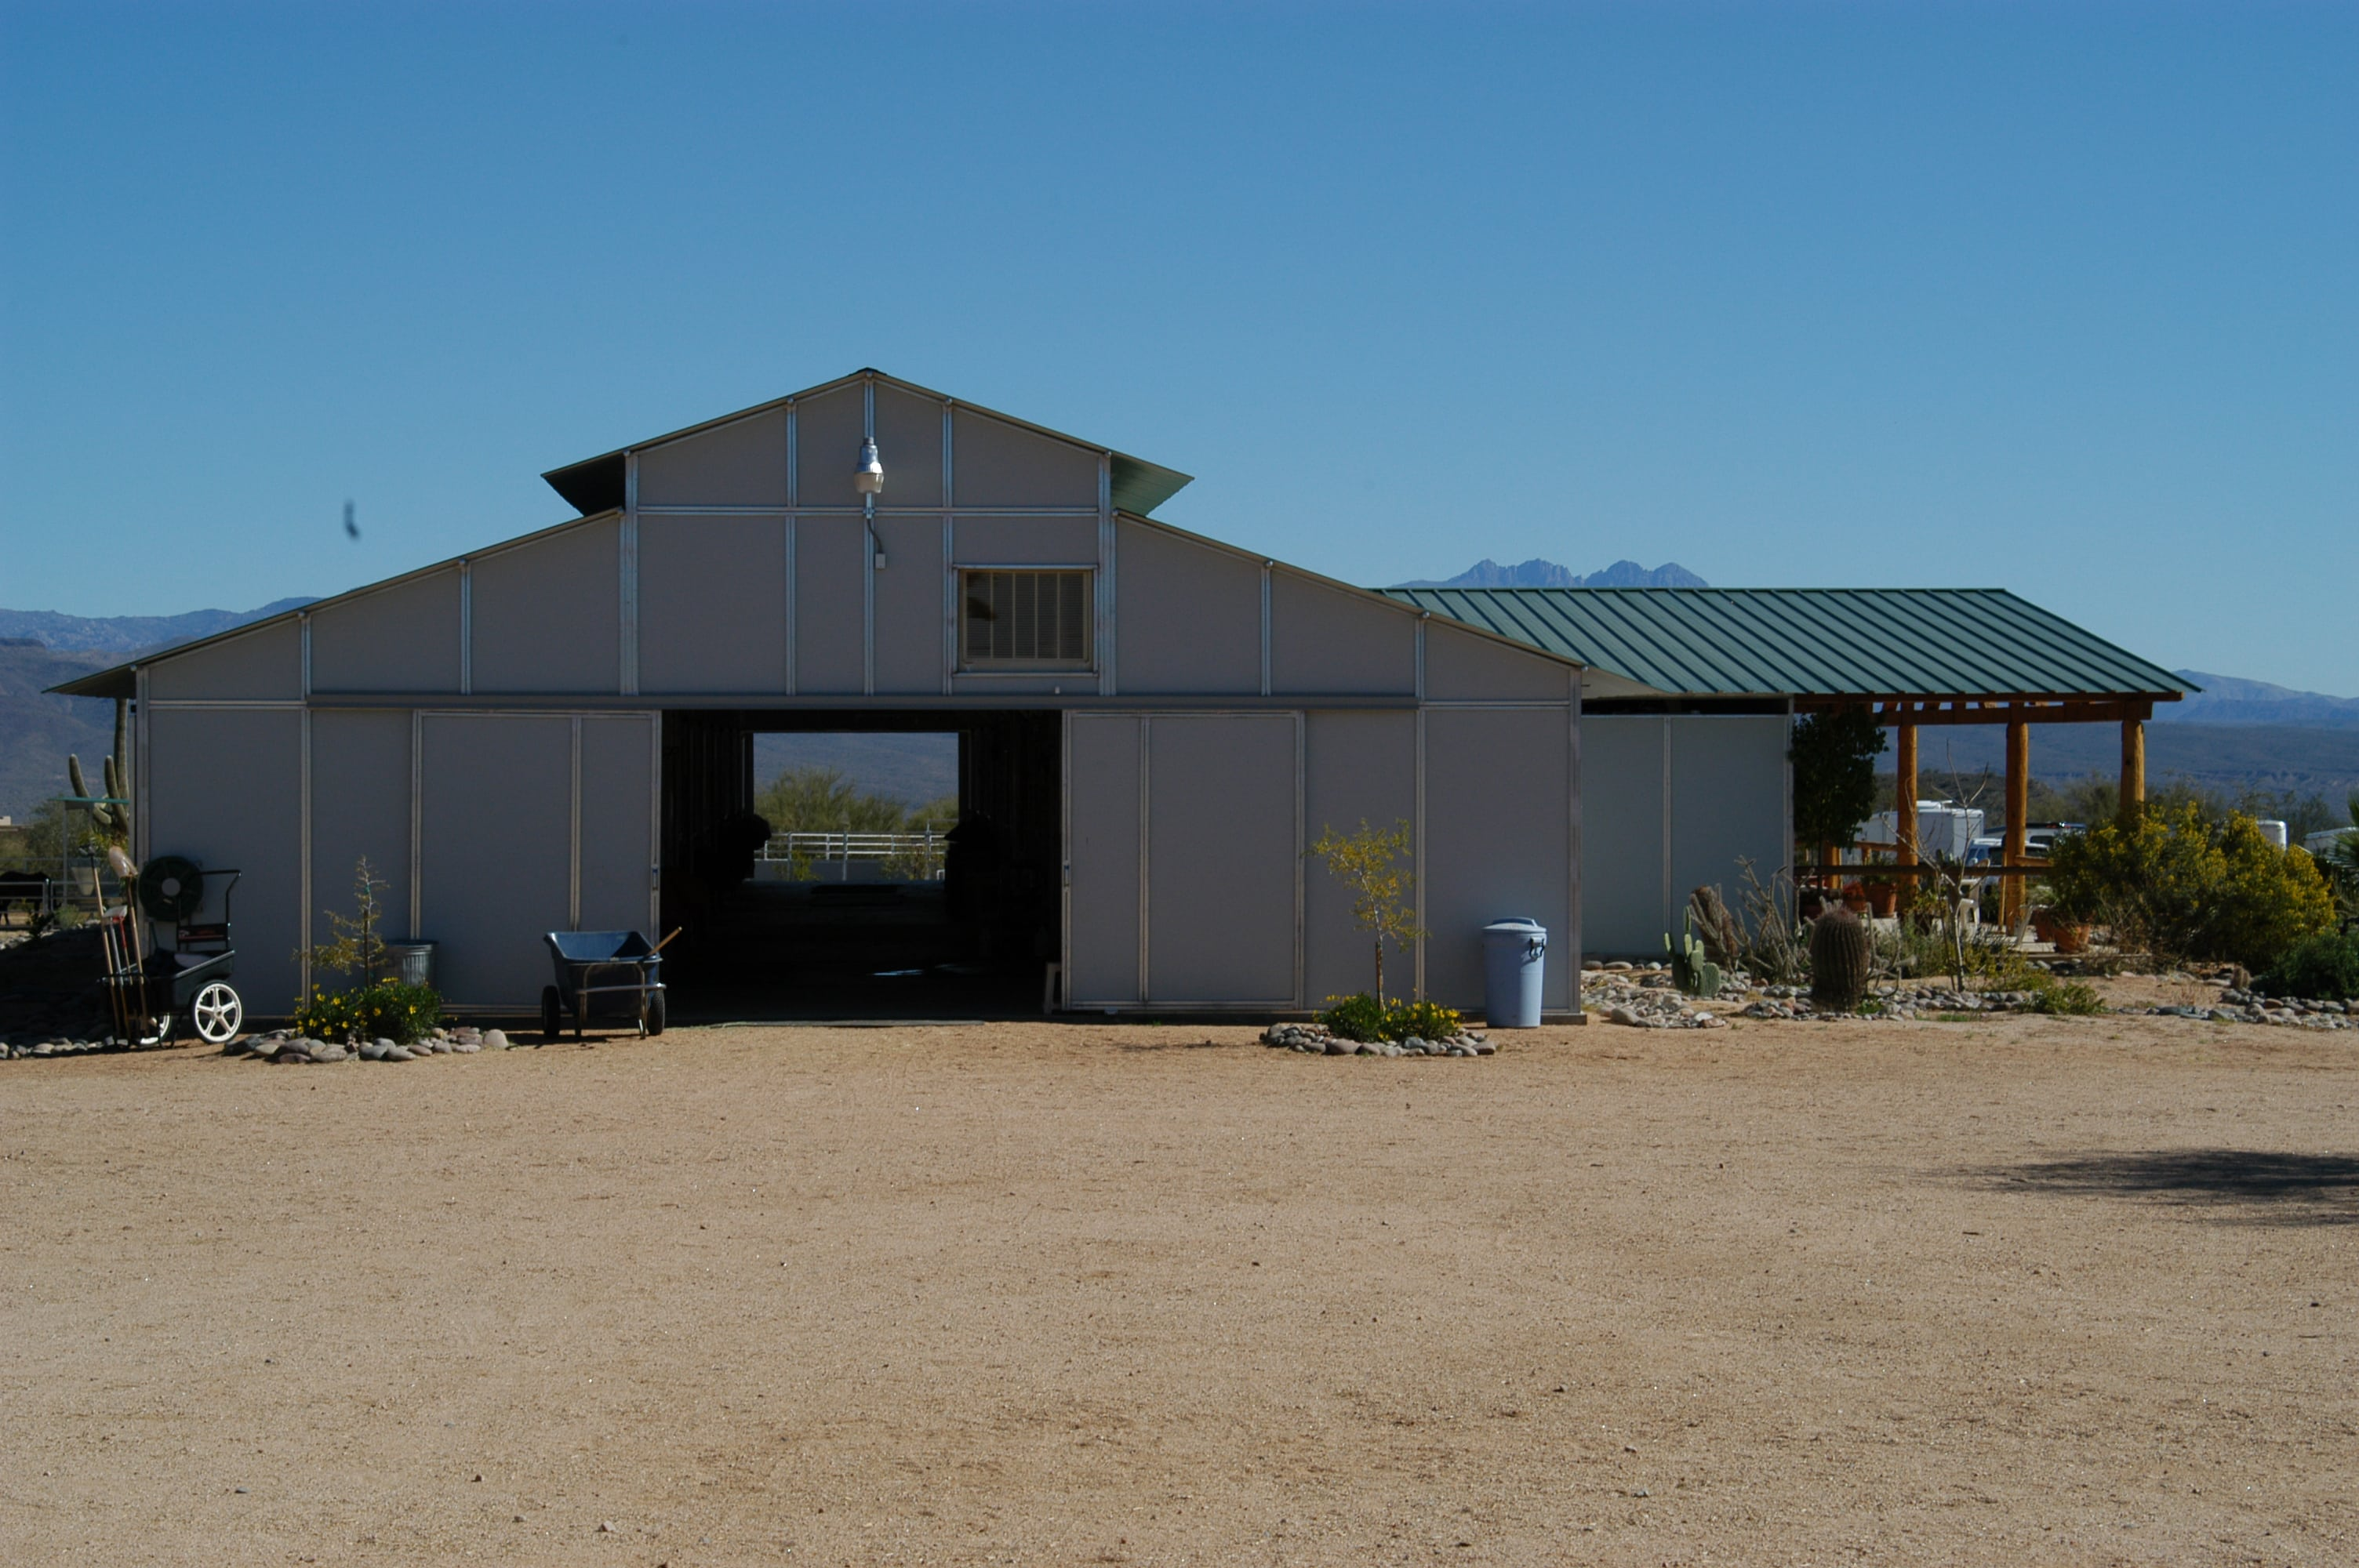 RCA 12' x 12' stalls 16' raised center aisle, with side porch, evaporator cooler helping with summer heat.